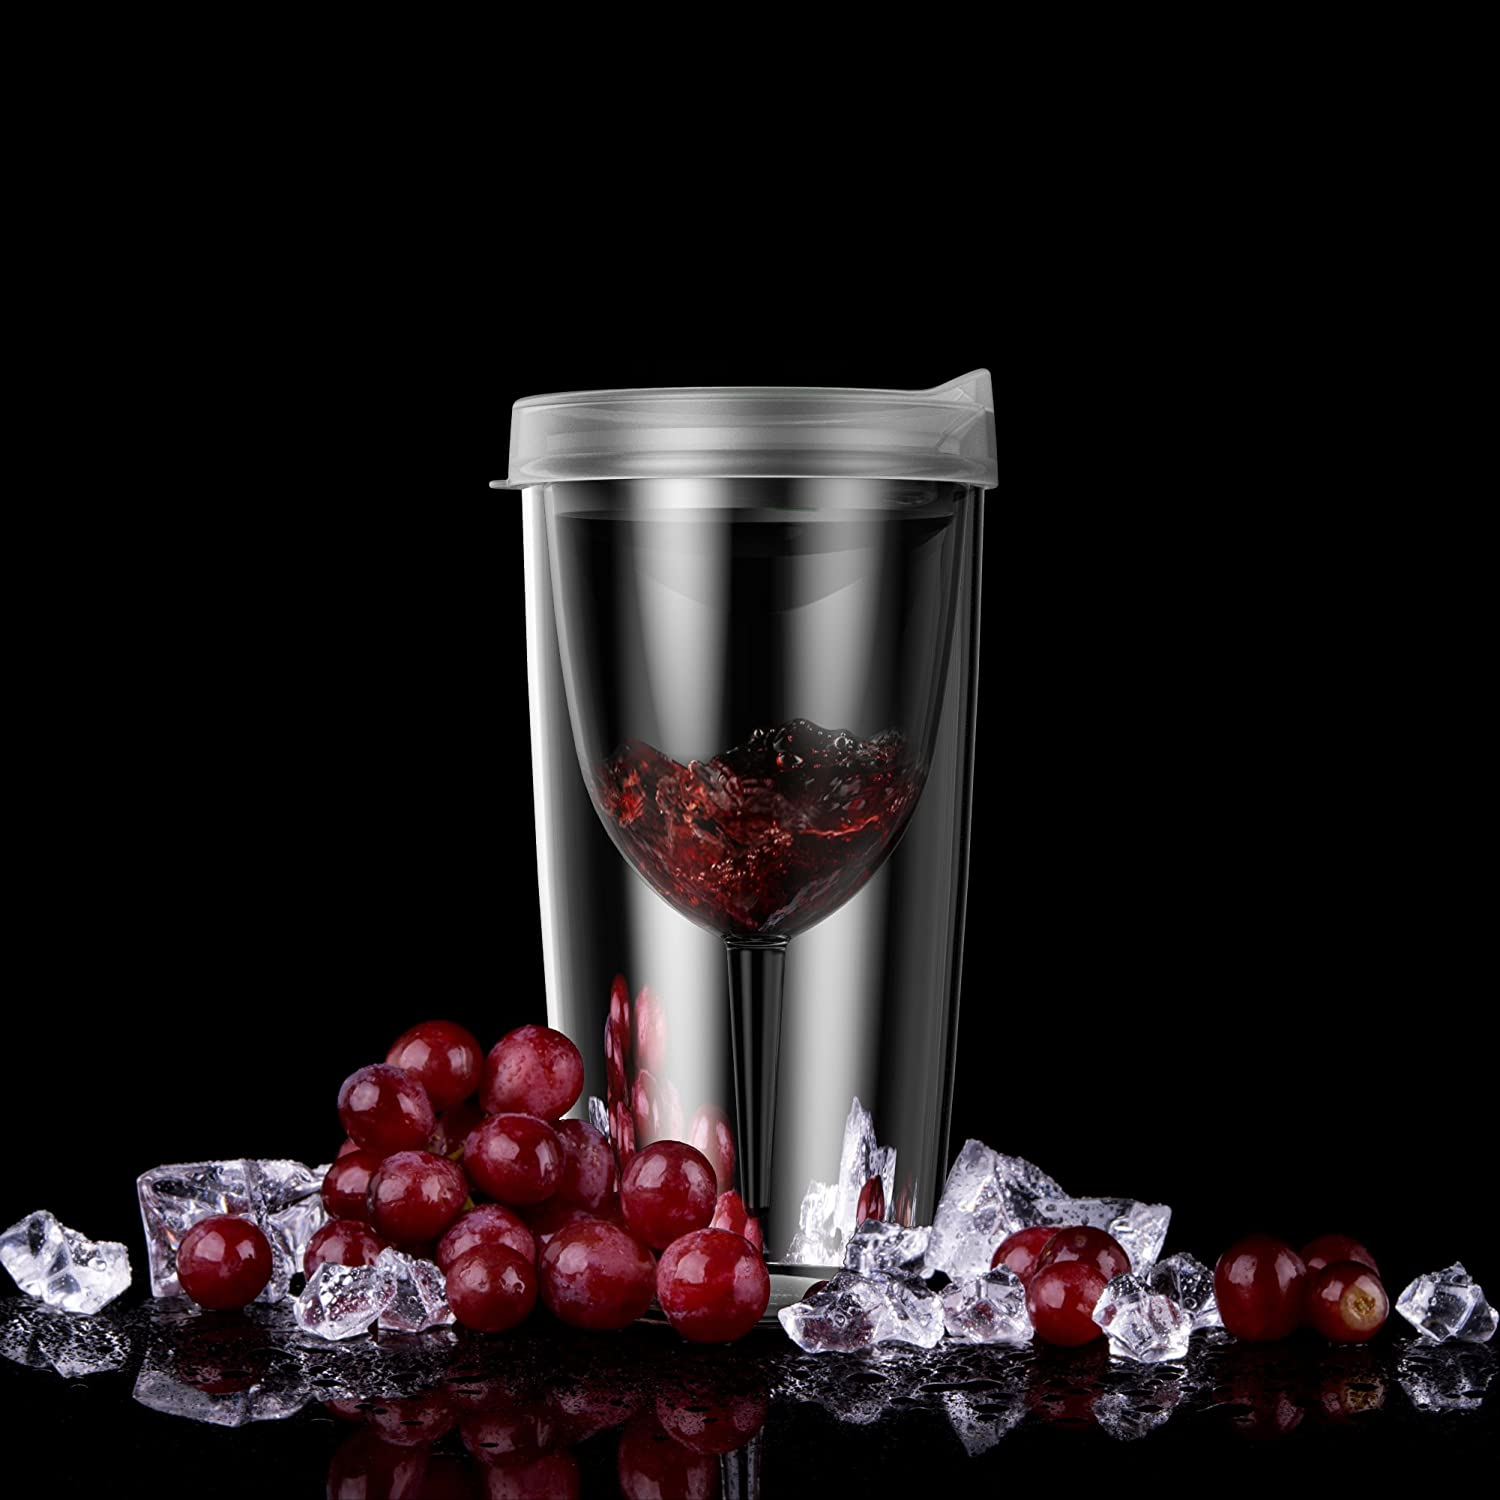 Amazon best seller 10oz plastic wine glass transparent wine tumblers double wall insulated wine cups with lid Featured Image